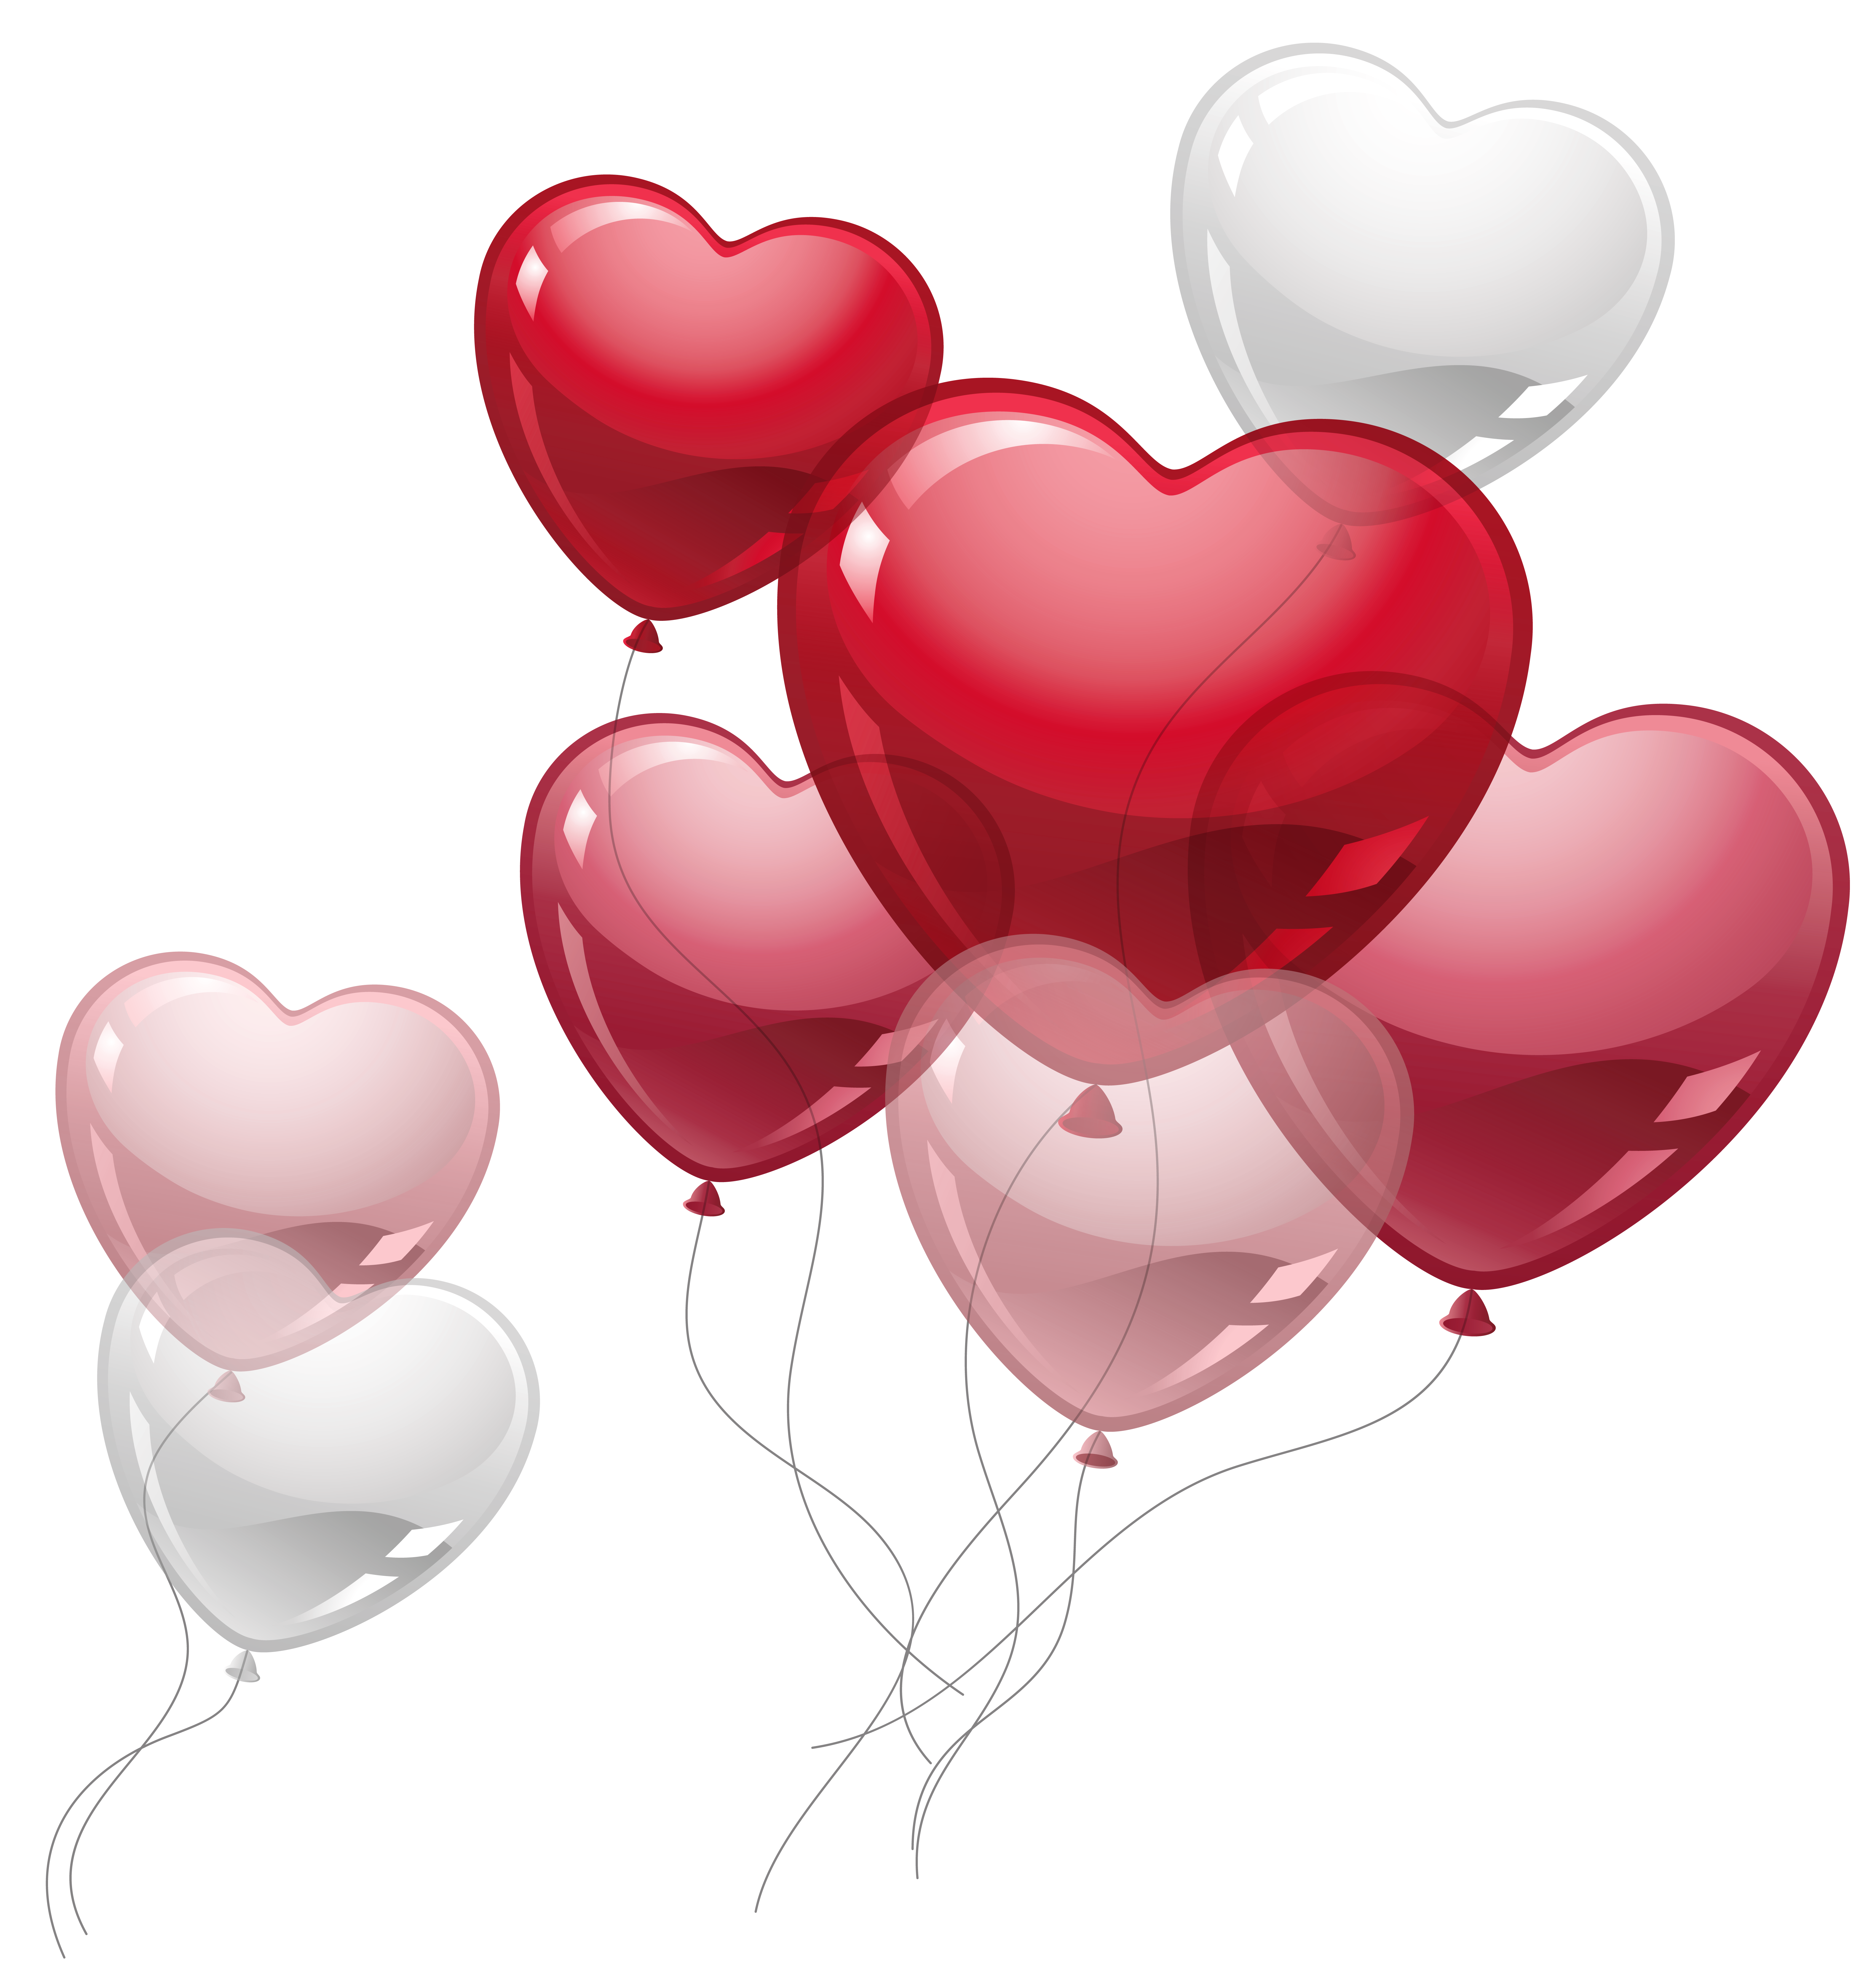 Cute hearts png. Heart balloons clipart picture